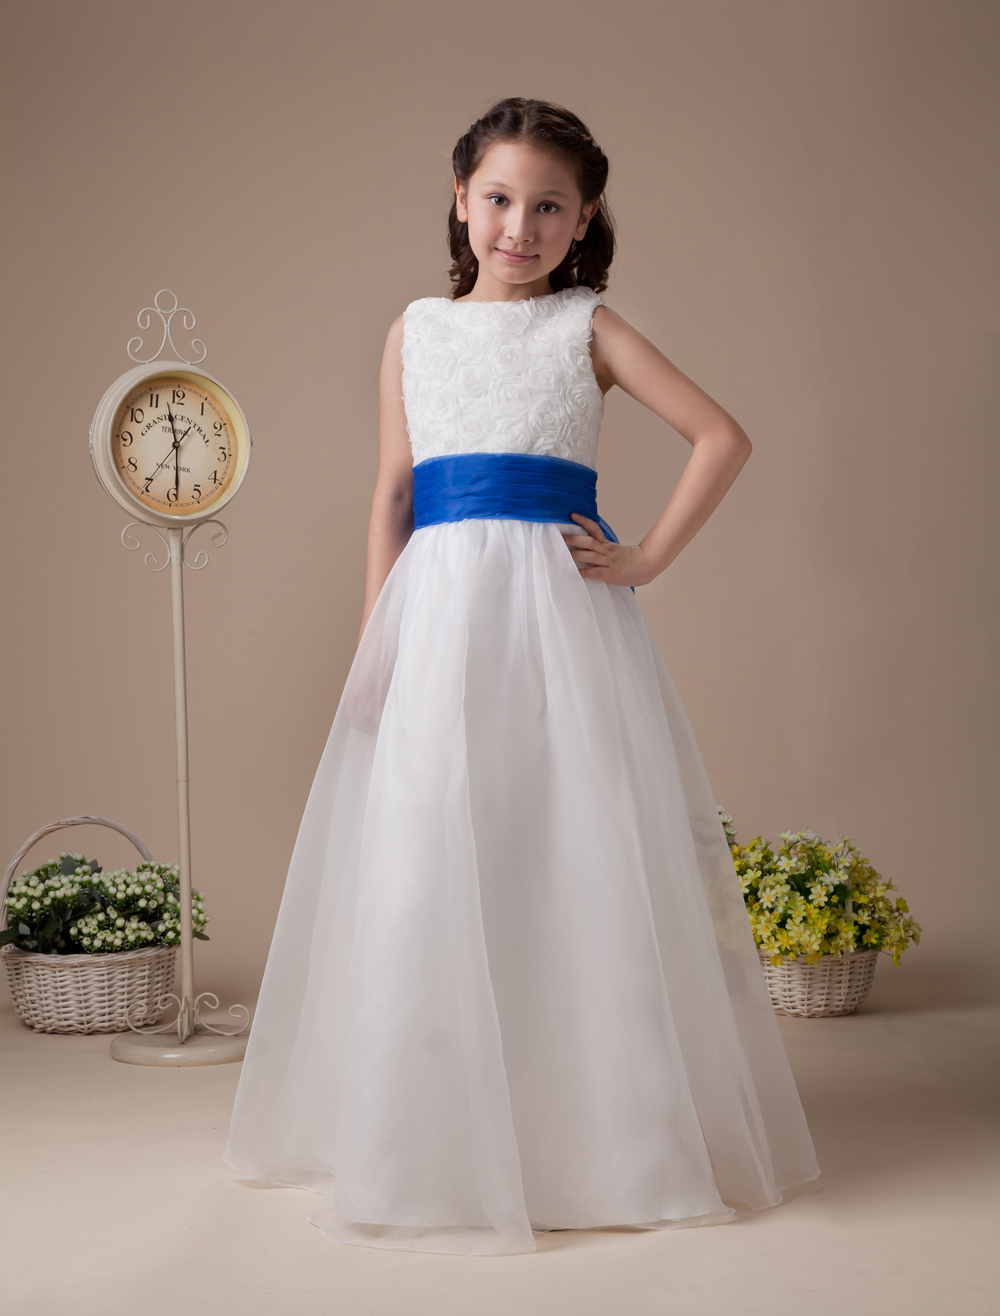 Sweet White Soft Organza Flower Girl Dress